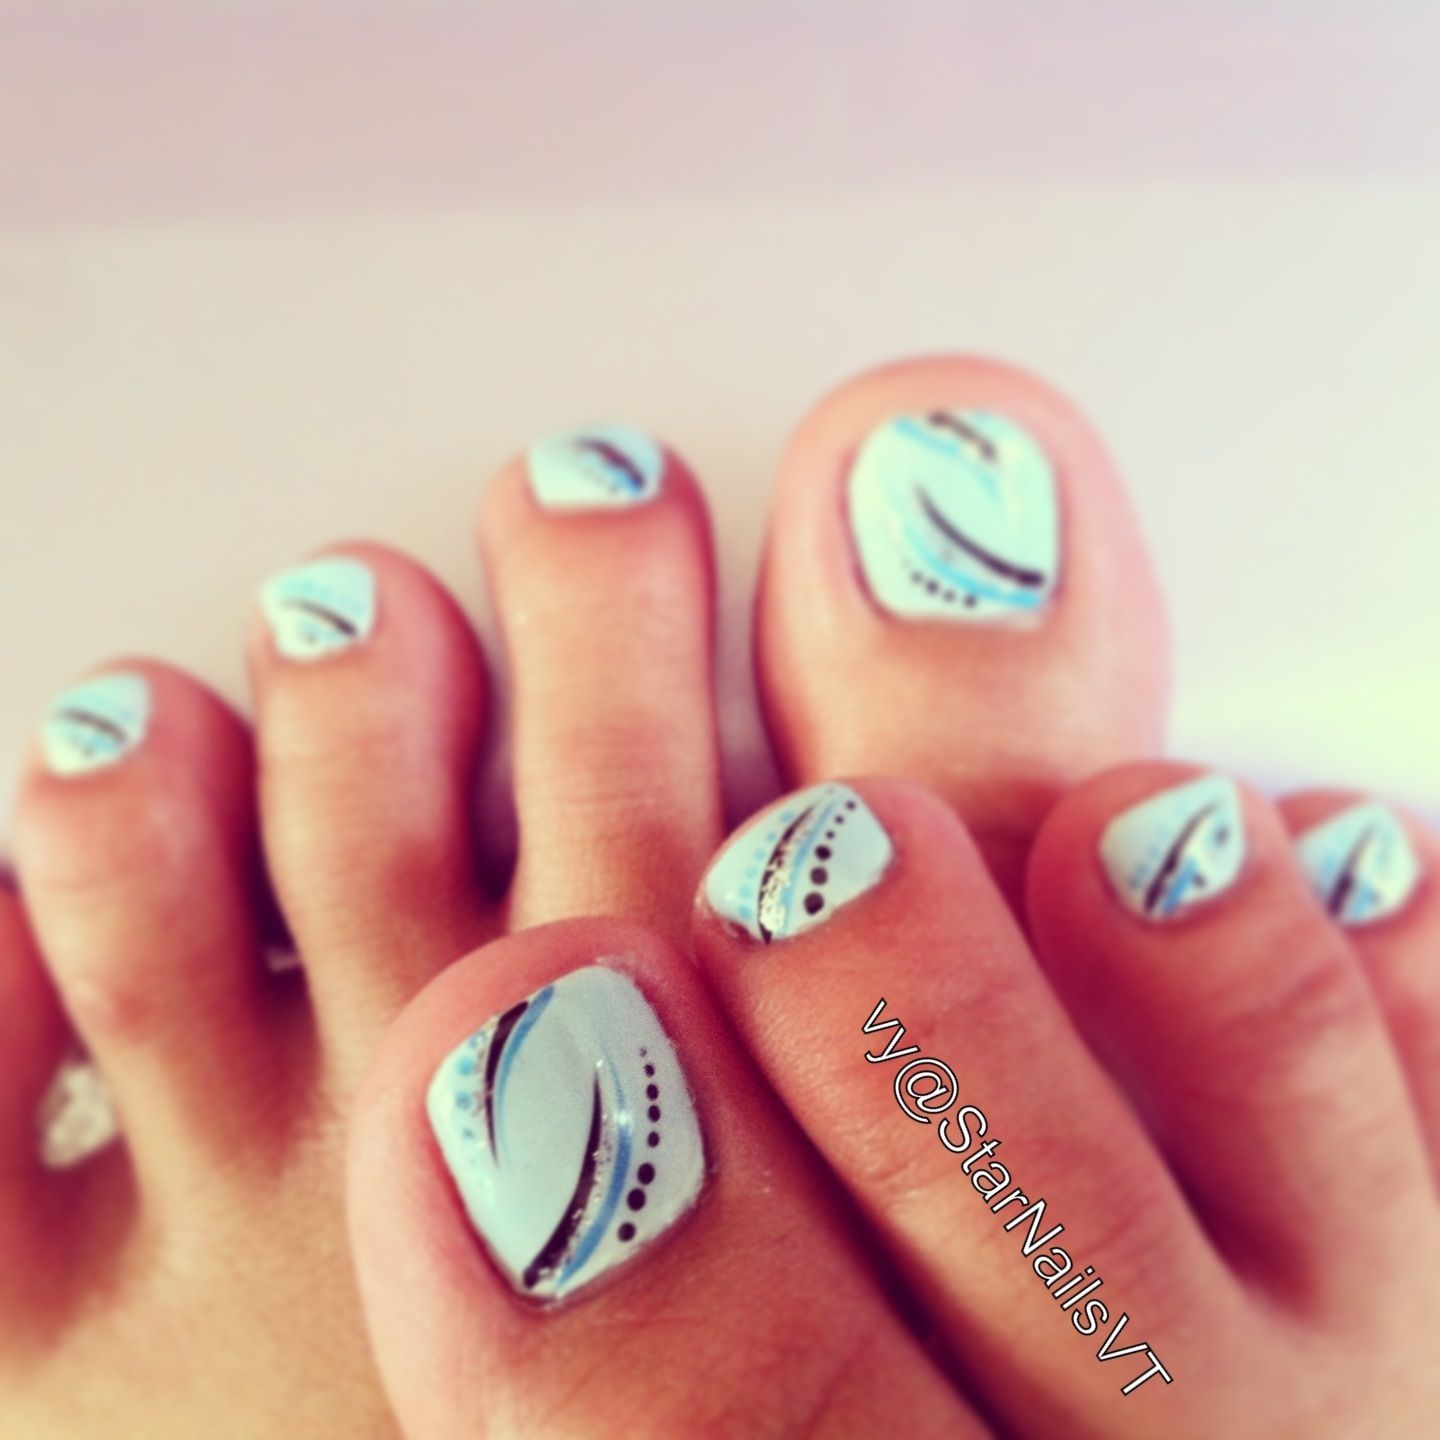 Toe Nail Designs Ideas blue and white flower toe nail art Toe Nail Design Vtn